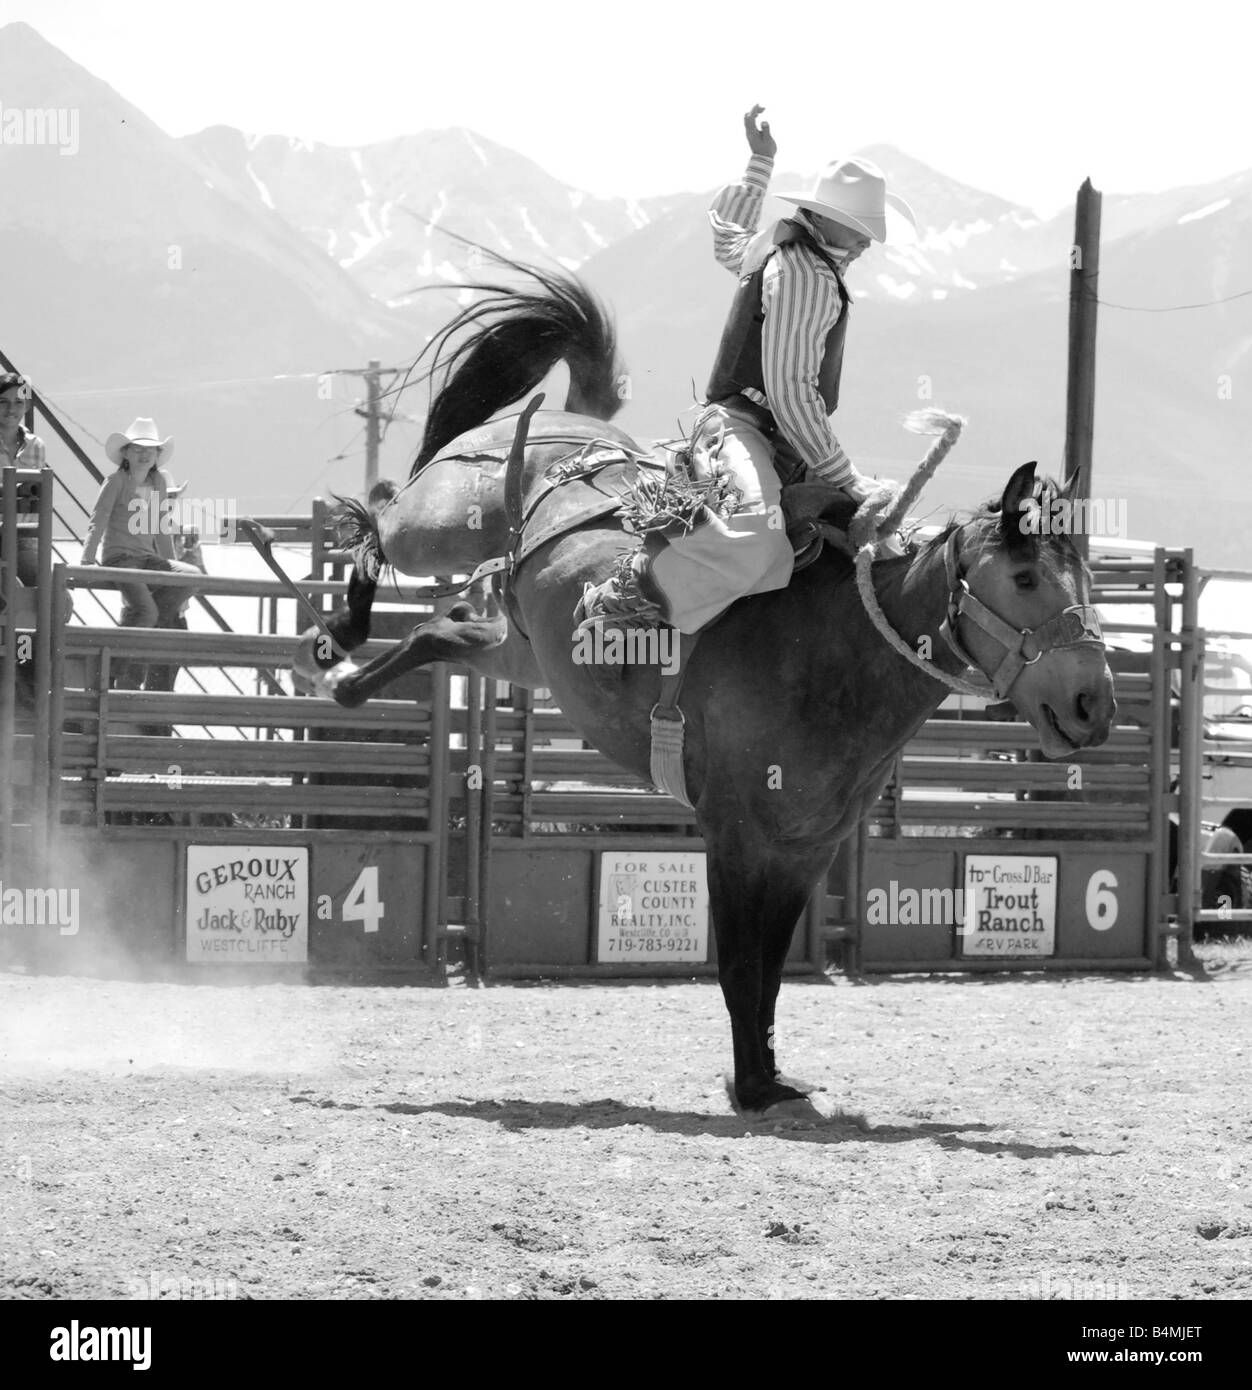 Rodeo cowboy on a bucking bronc - Stock Image